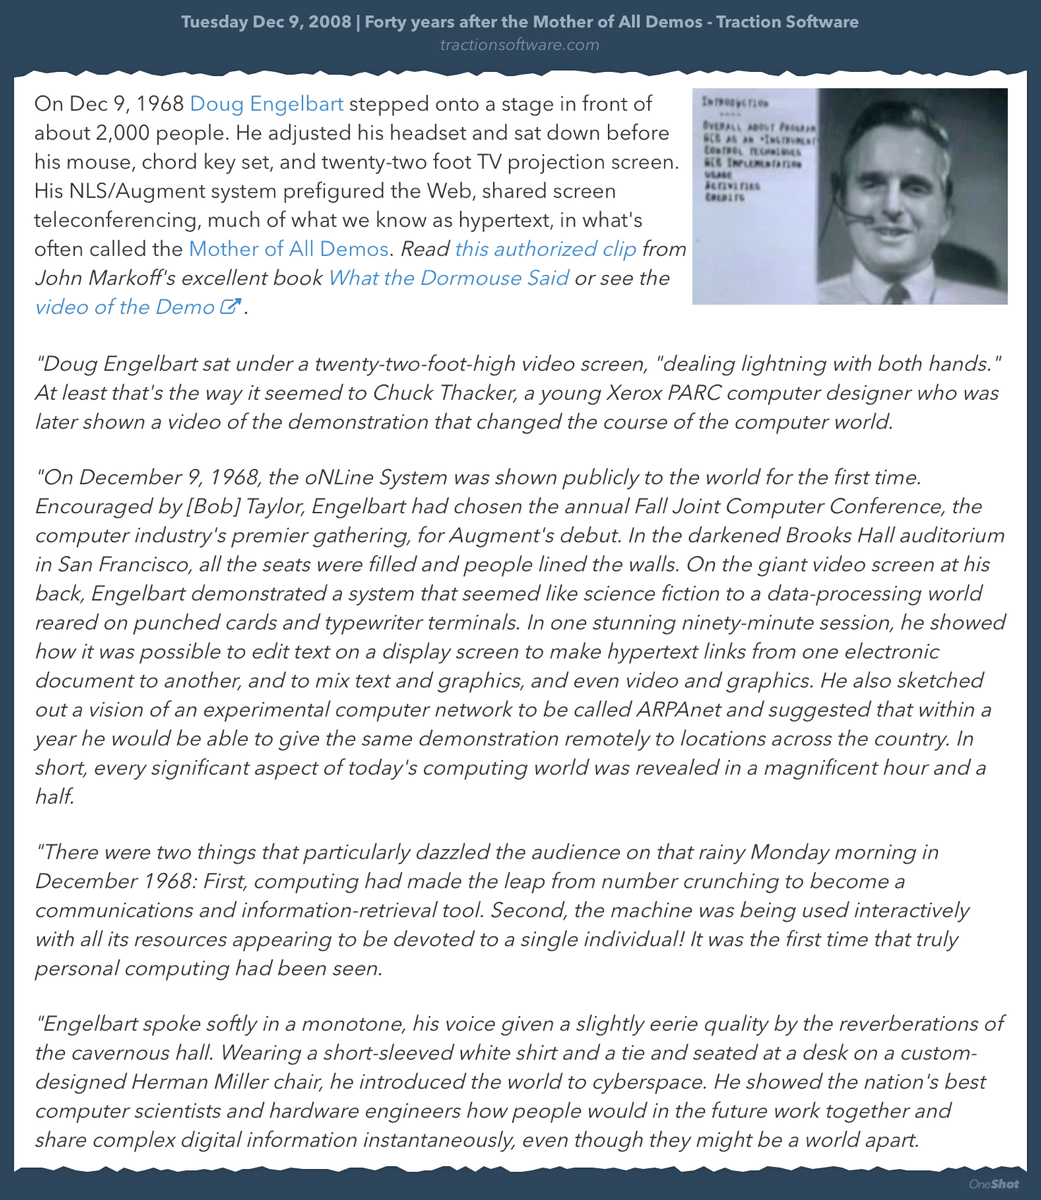 On this day: Forty seven years after Doug Engelbart's Mother of All Demos https://t.co/VyRJiZ64tO https://t.co/7oWG1aDmI8